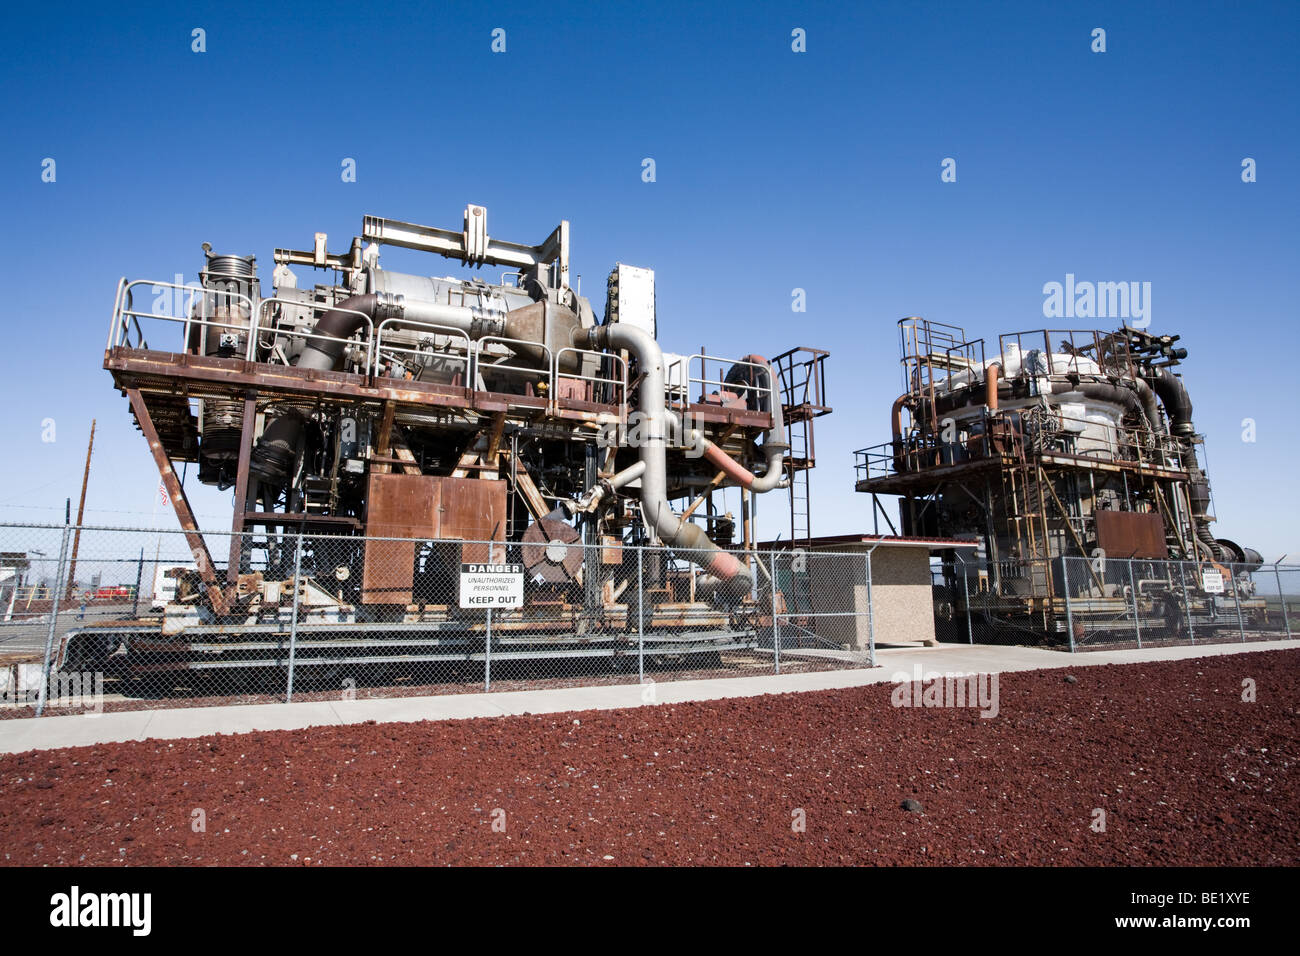 Experimental atomic jet engines at Atomic City, Idaho, site of first nuclear power plant in world. - Stock Image